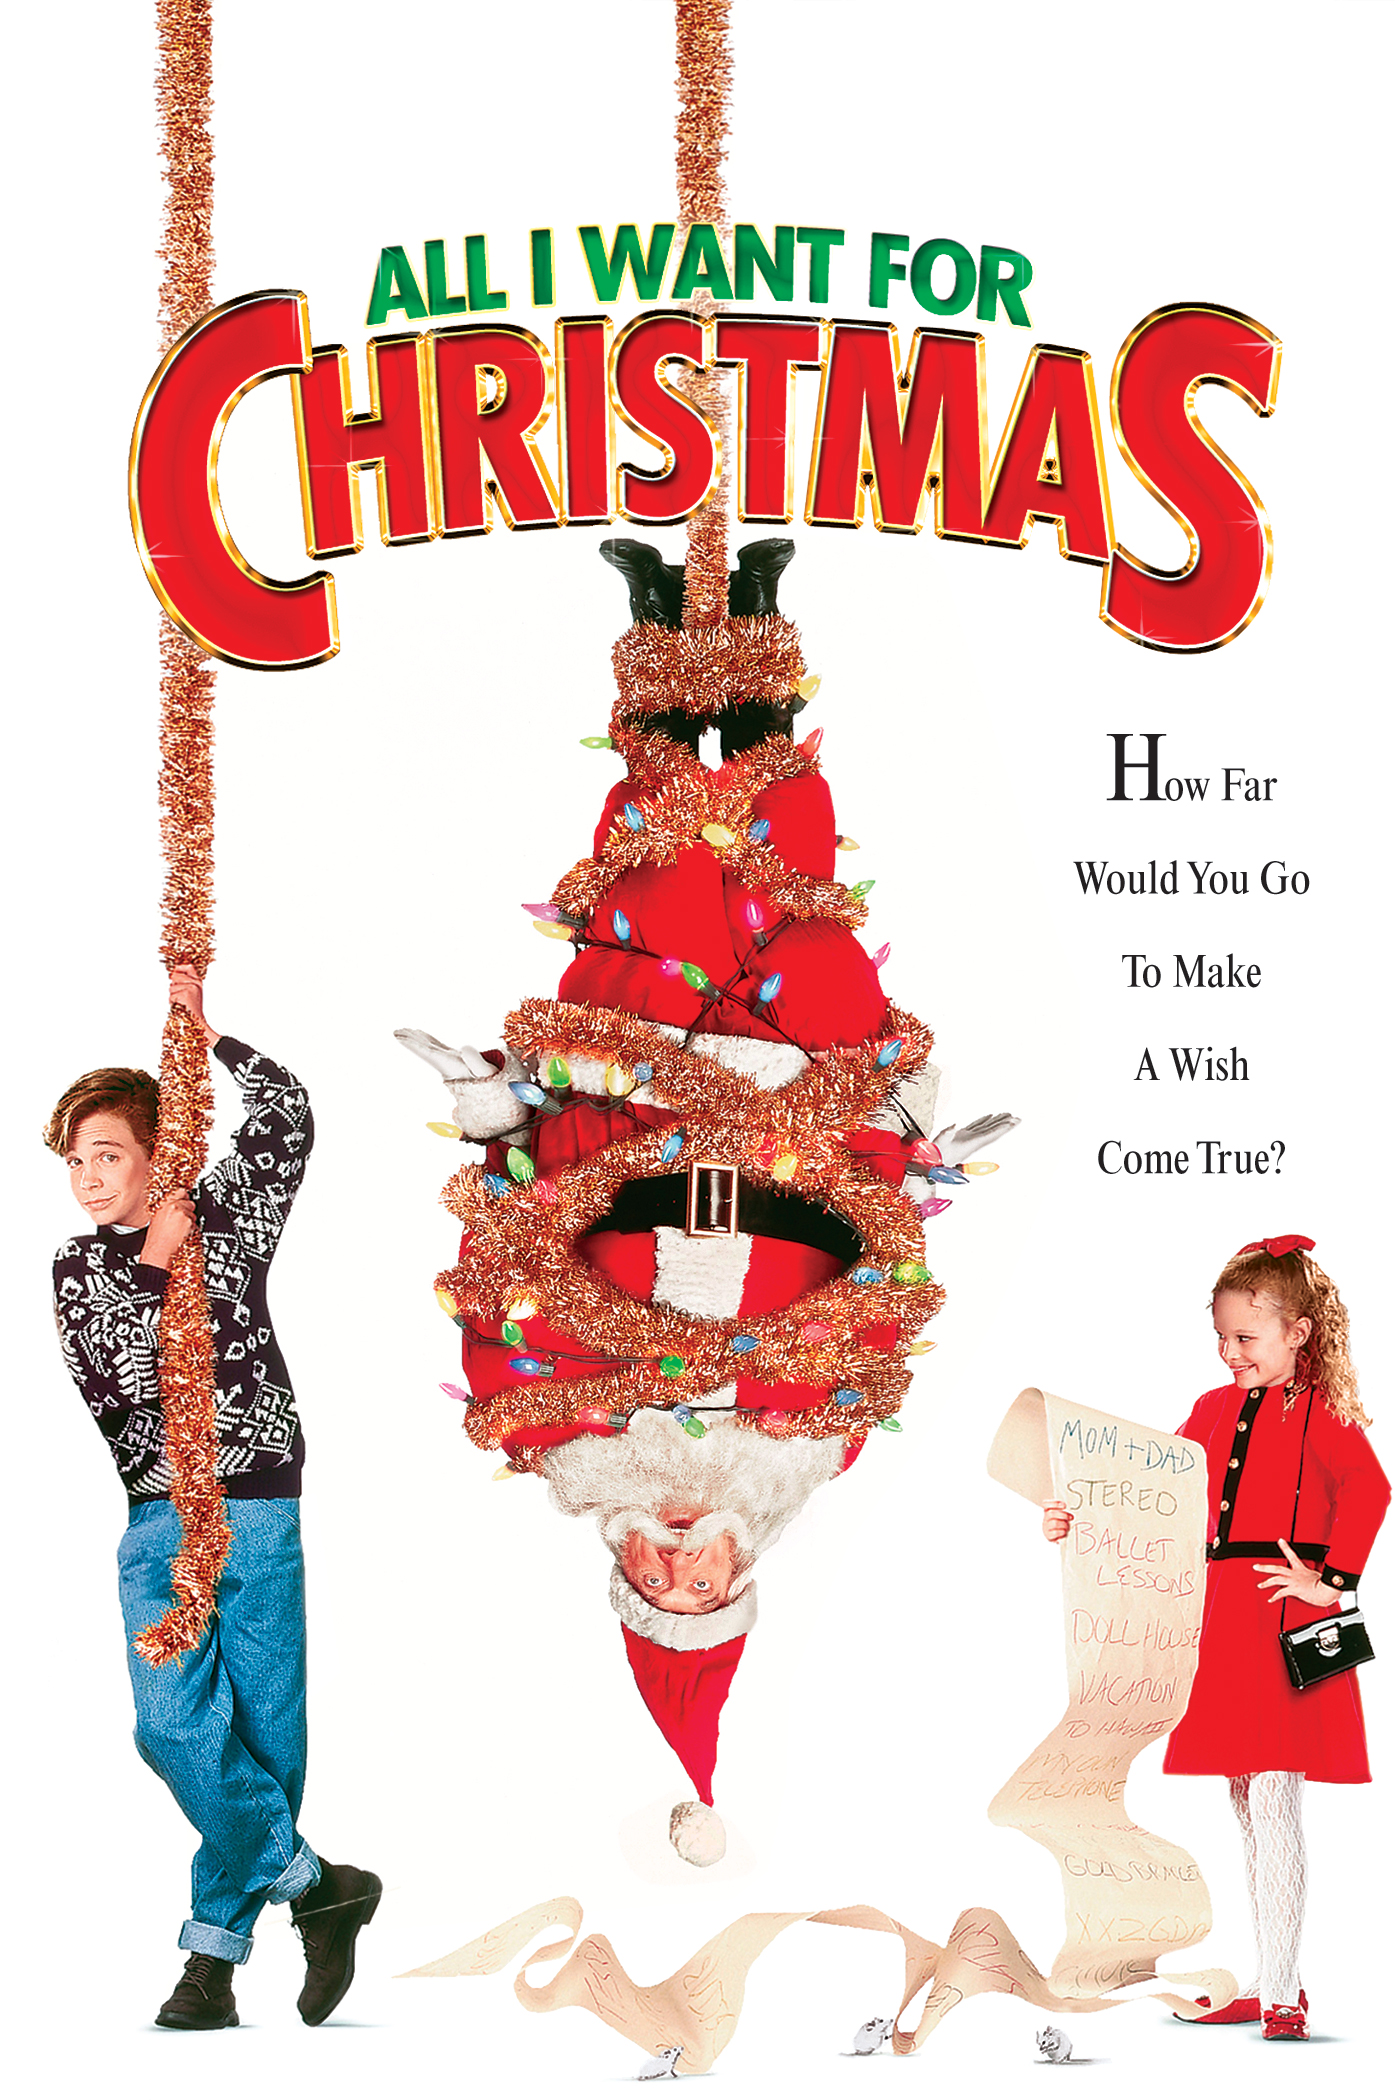 All I Want for Christmas(1991)